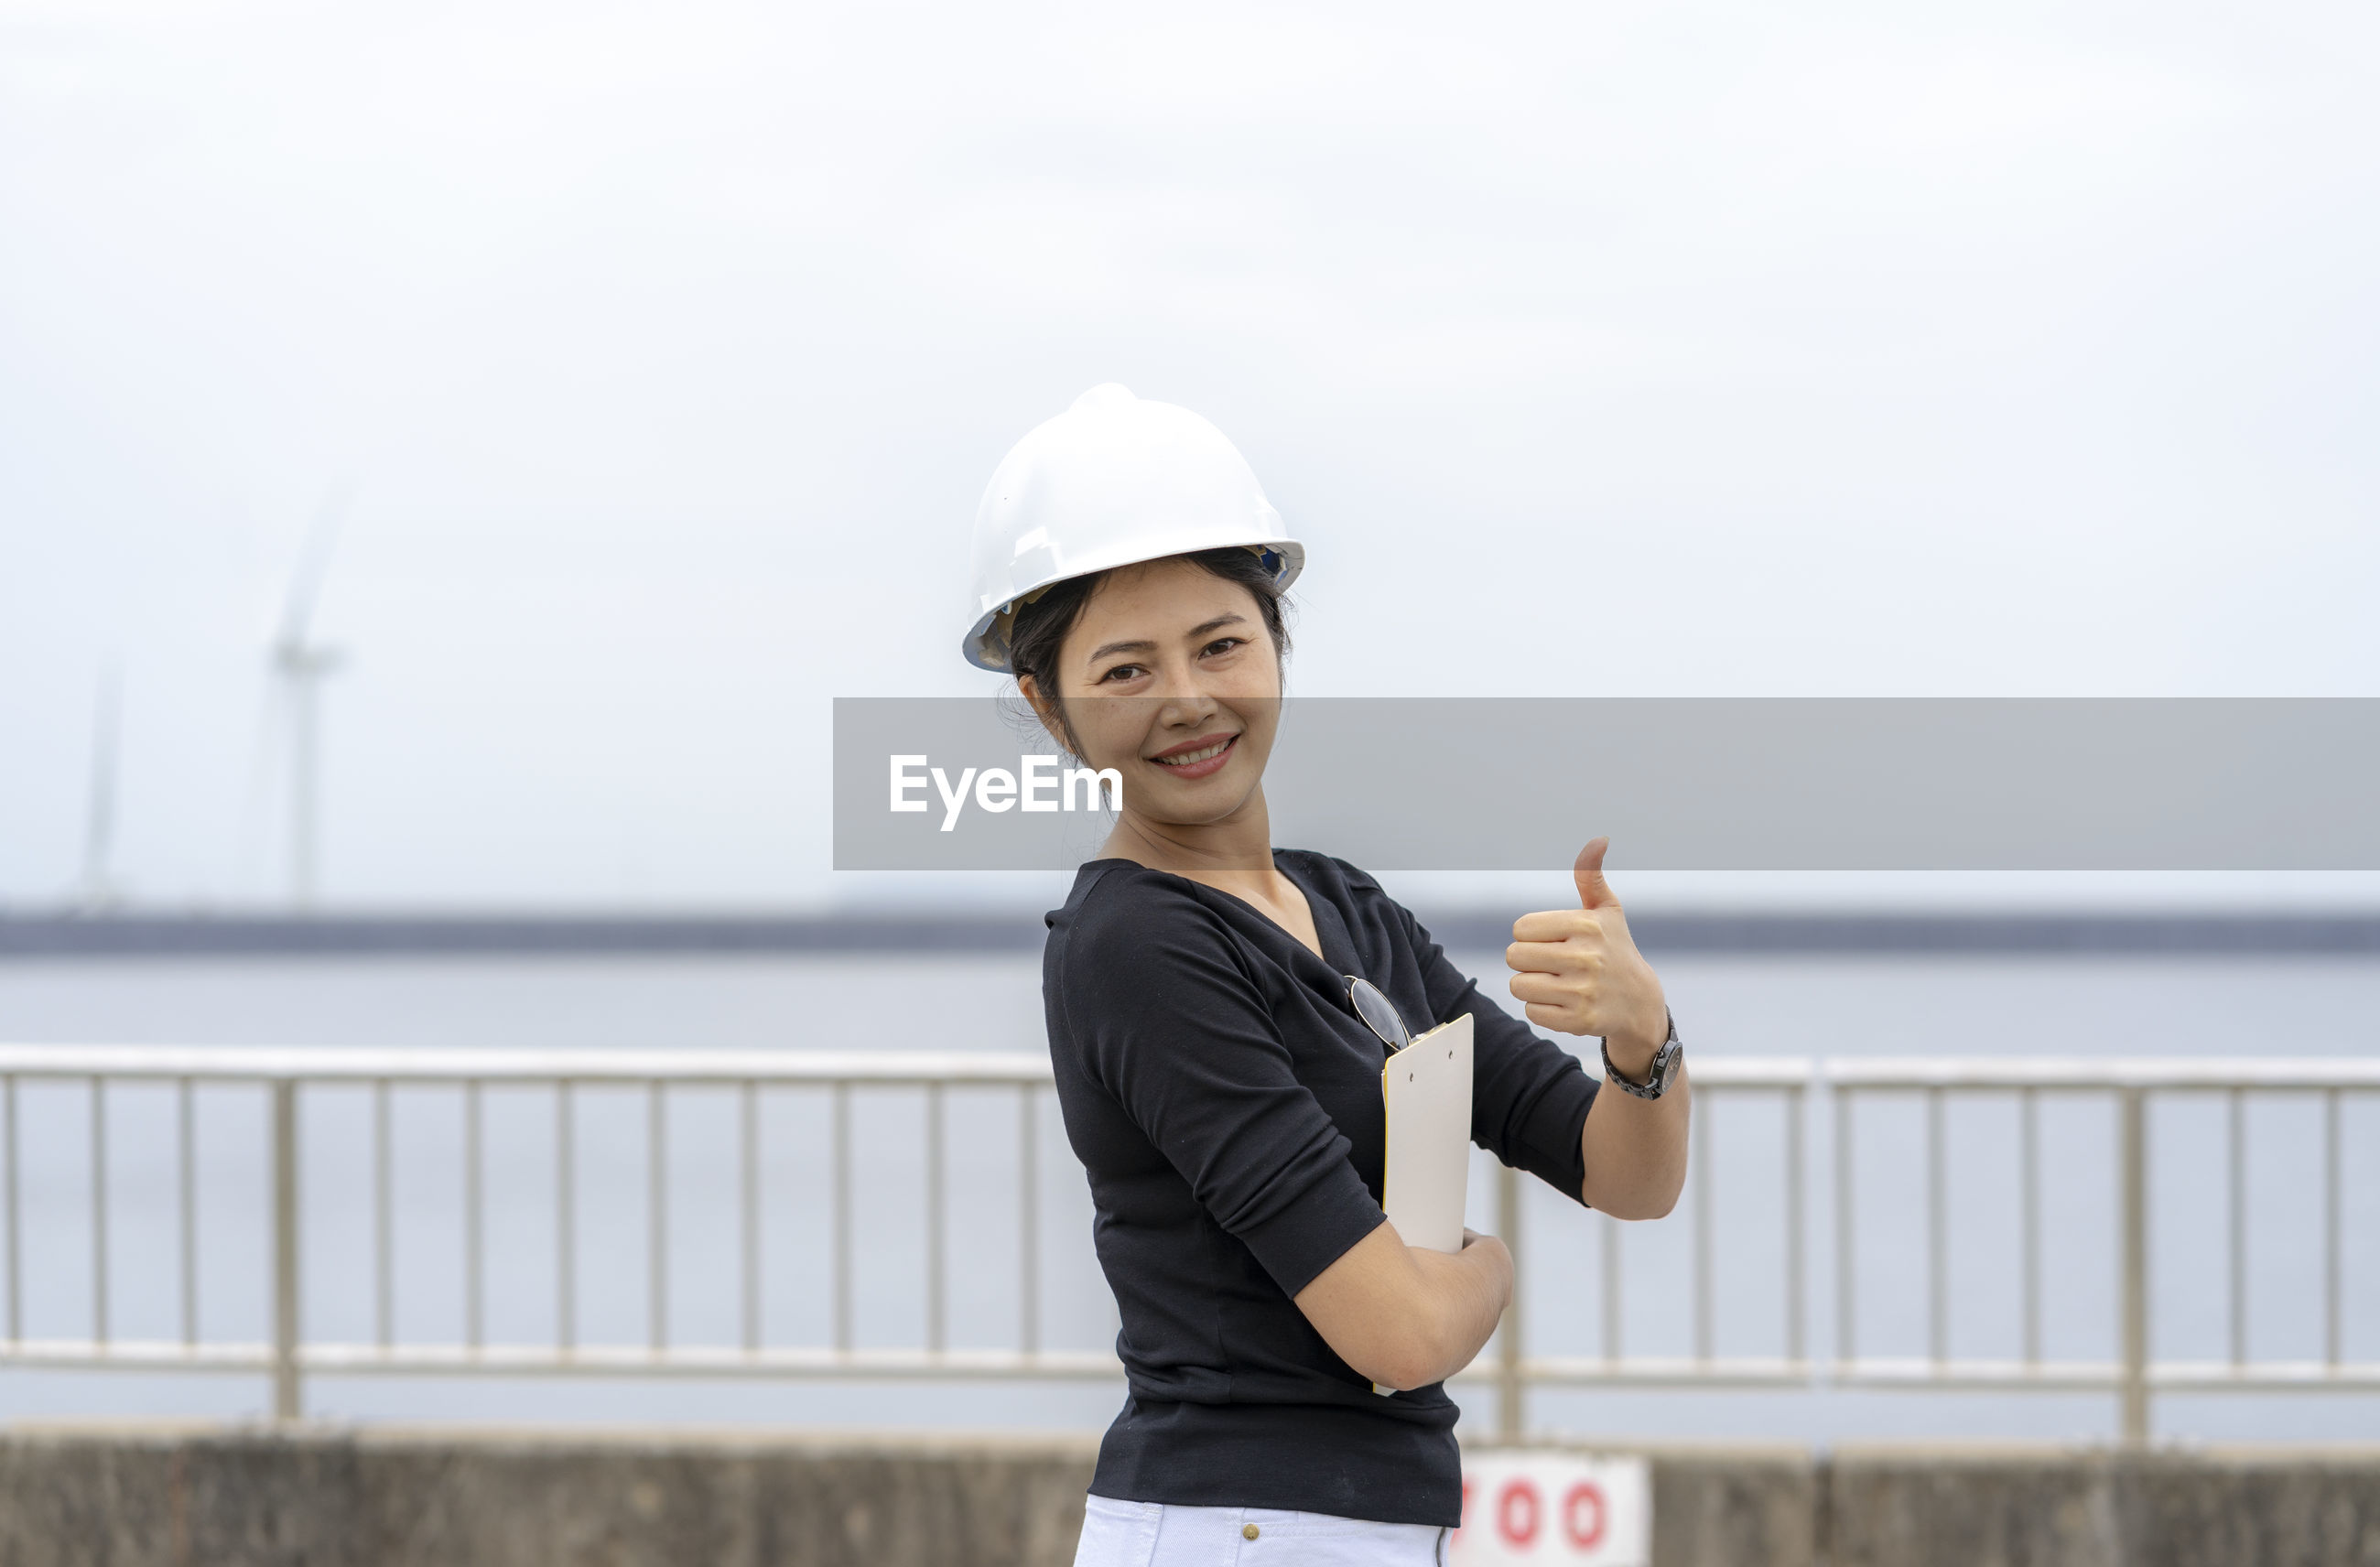 Portrait of smiling woman gesturing thumbs up while holding clipboard against railing and sky